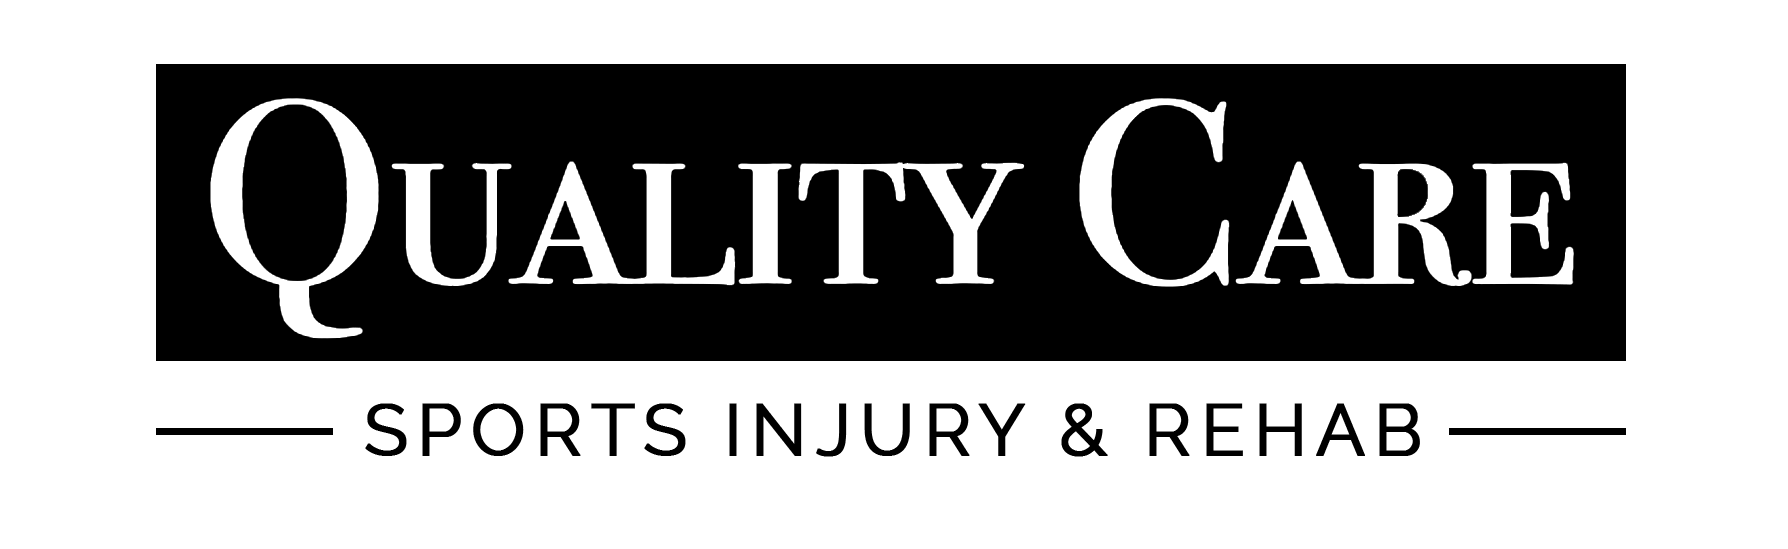 Quality Care NEW png.png